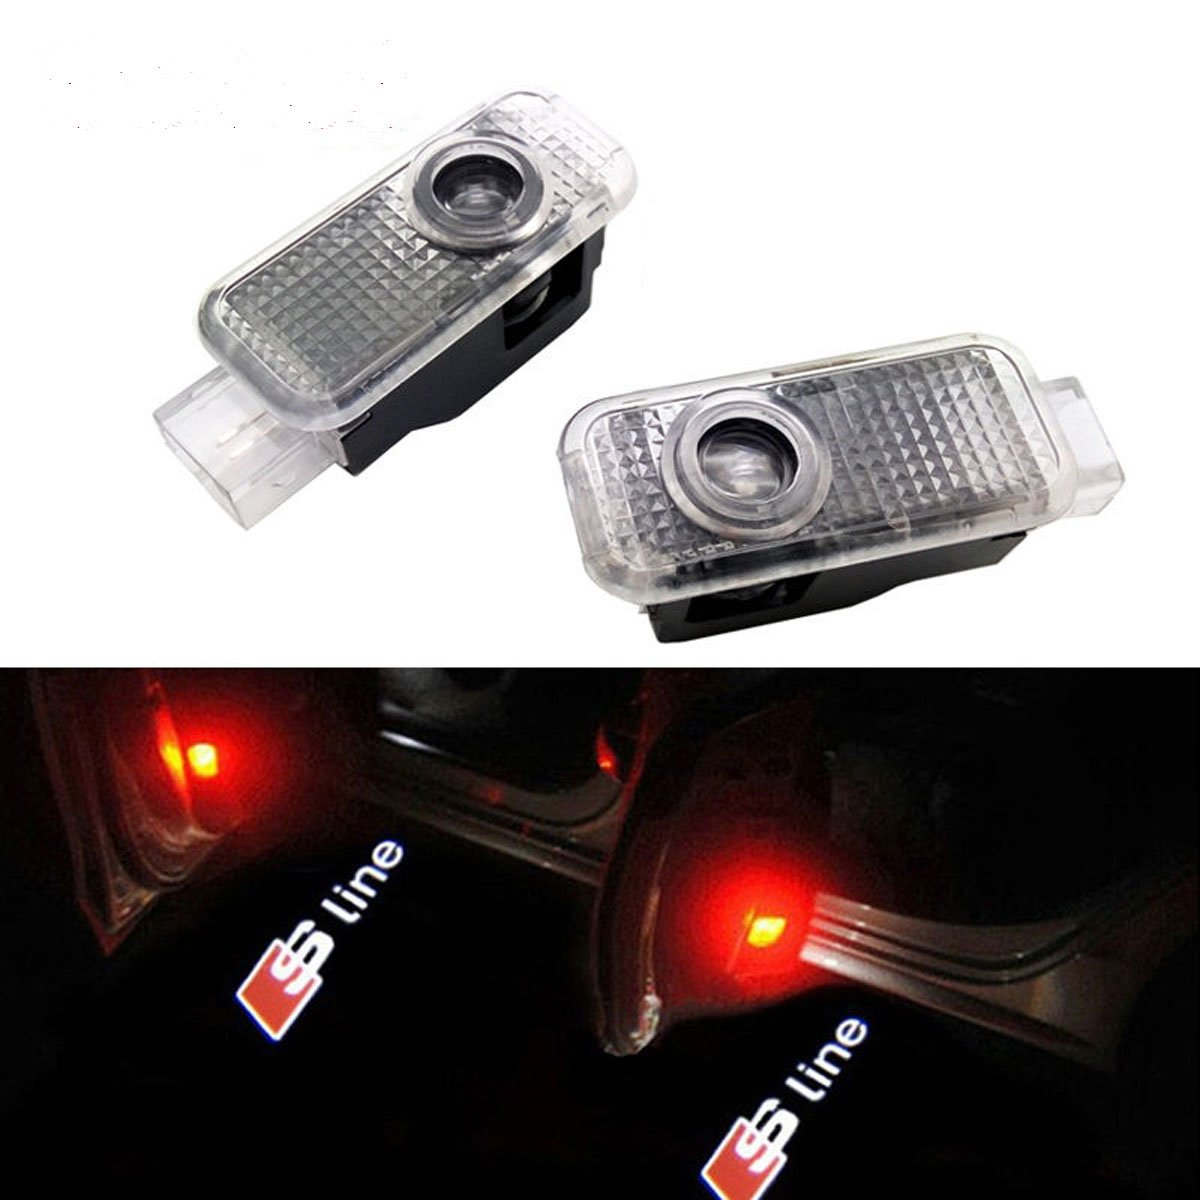 CNAutoLicht 2X Cree LED S Line Logo Door Step Light Laser Shadow Logo Projector Lamp For Audi A2 A3 A4 A5 A6 A7 A8 Q2 Q3 Q6 Q5 Q7 R8 TT RS4 RS5 RS6 RS7 S3 S4 S5 S6 S7 S8 Courtesy Light Welcome Light